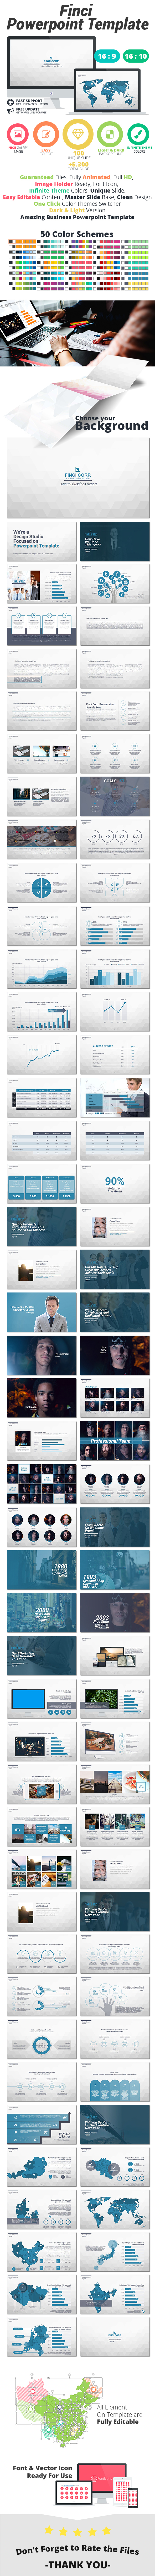 Finci Powerpoint Template - Business PowerPoint Templates